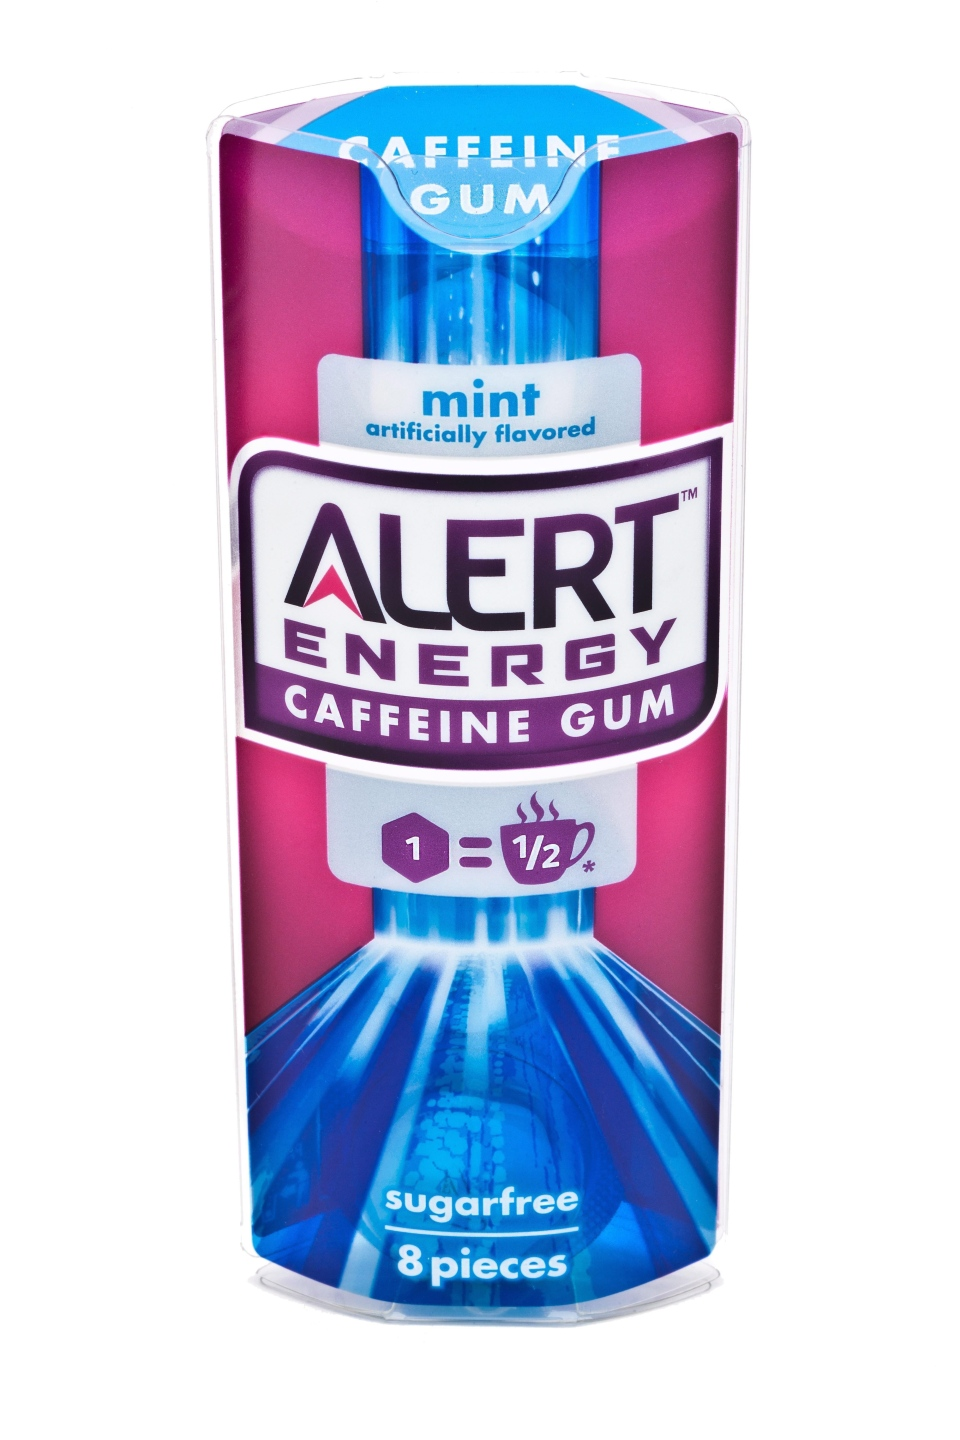 This product image provided by the Wm. Wrigley Jr. Company shows packaging for Alert Energy Caffeine Gum. (Wm. Wrigley Jr. Company)